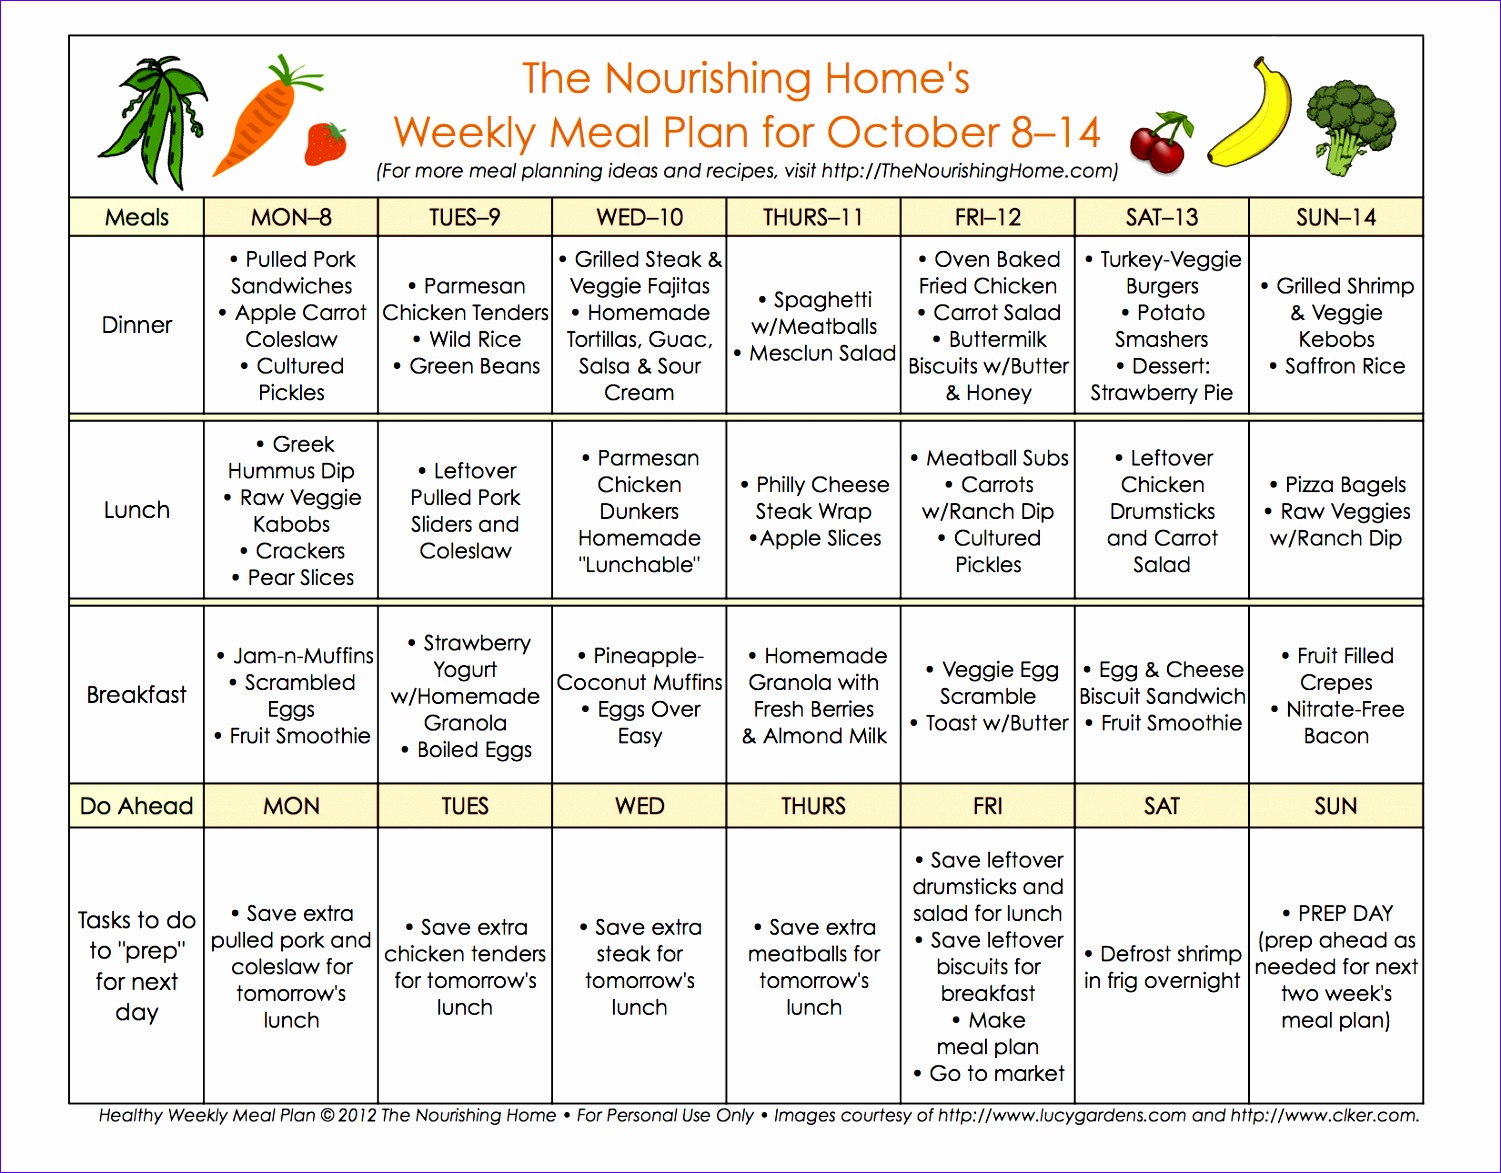 bi weekly meal plan for october 1 14 15011173